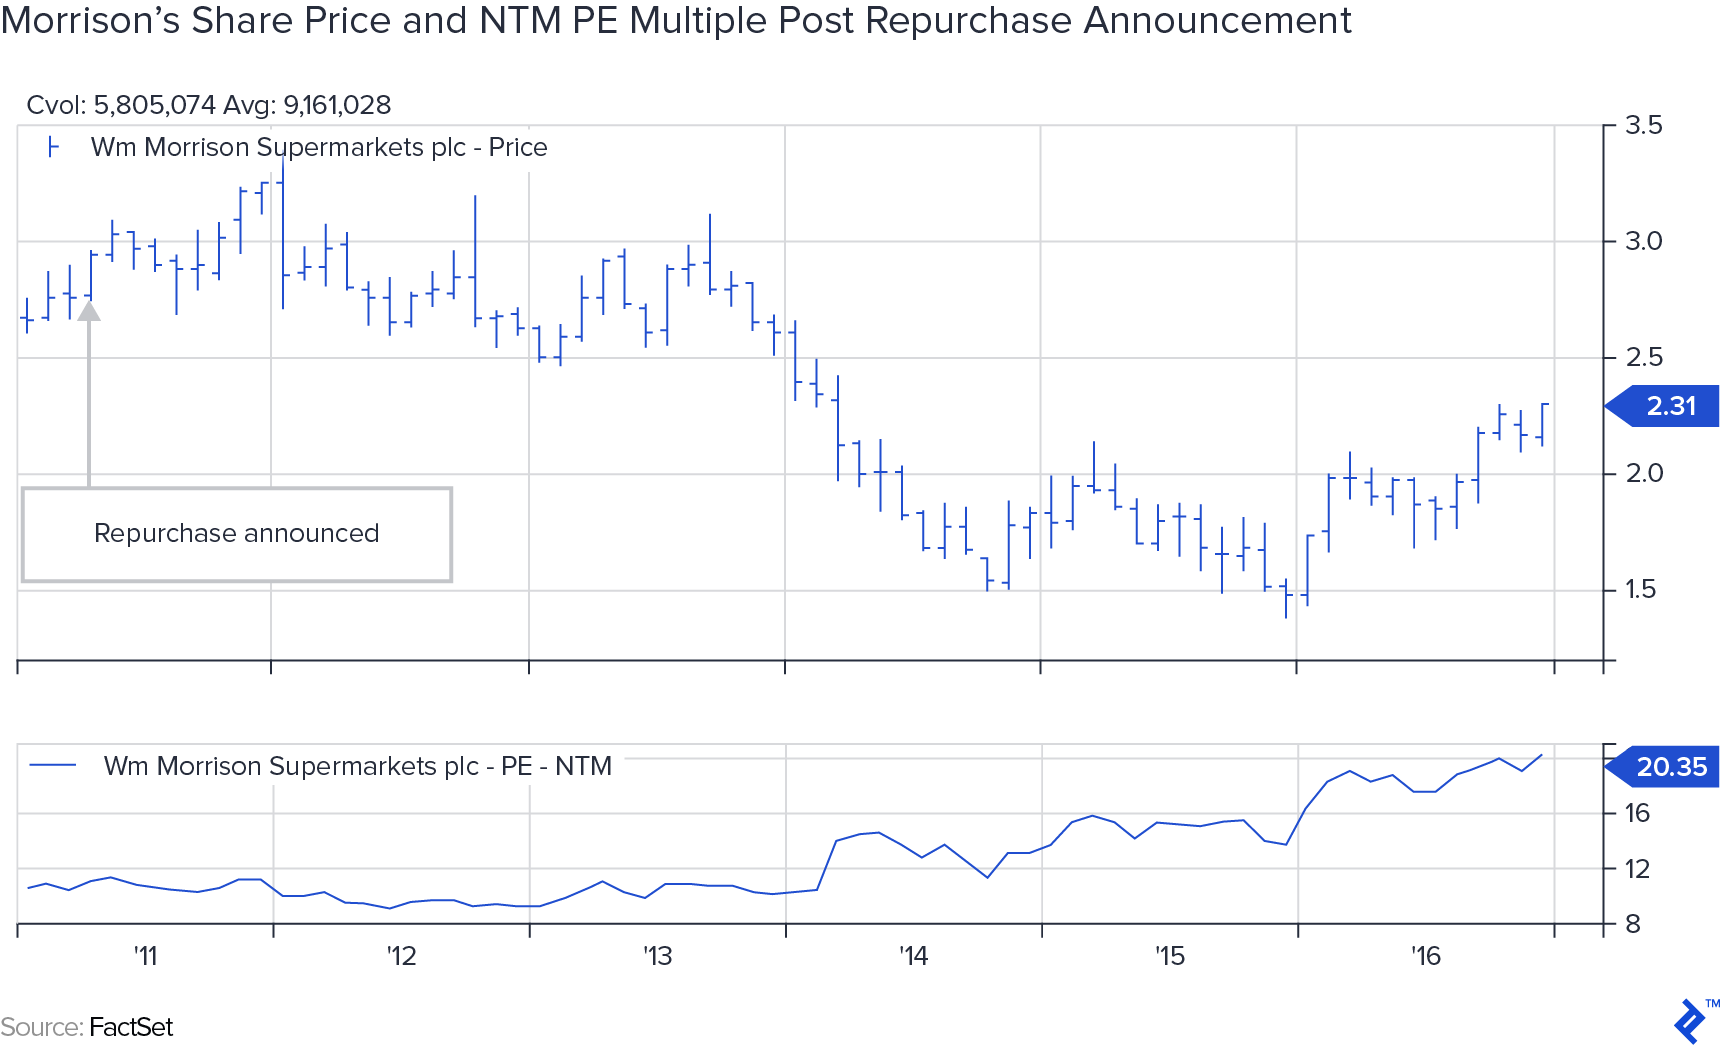 Morrison's share price and NTM PE multiple post repurchase announcement